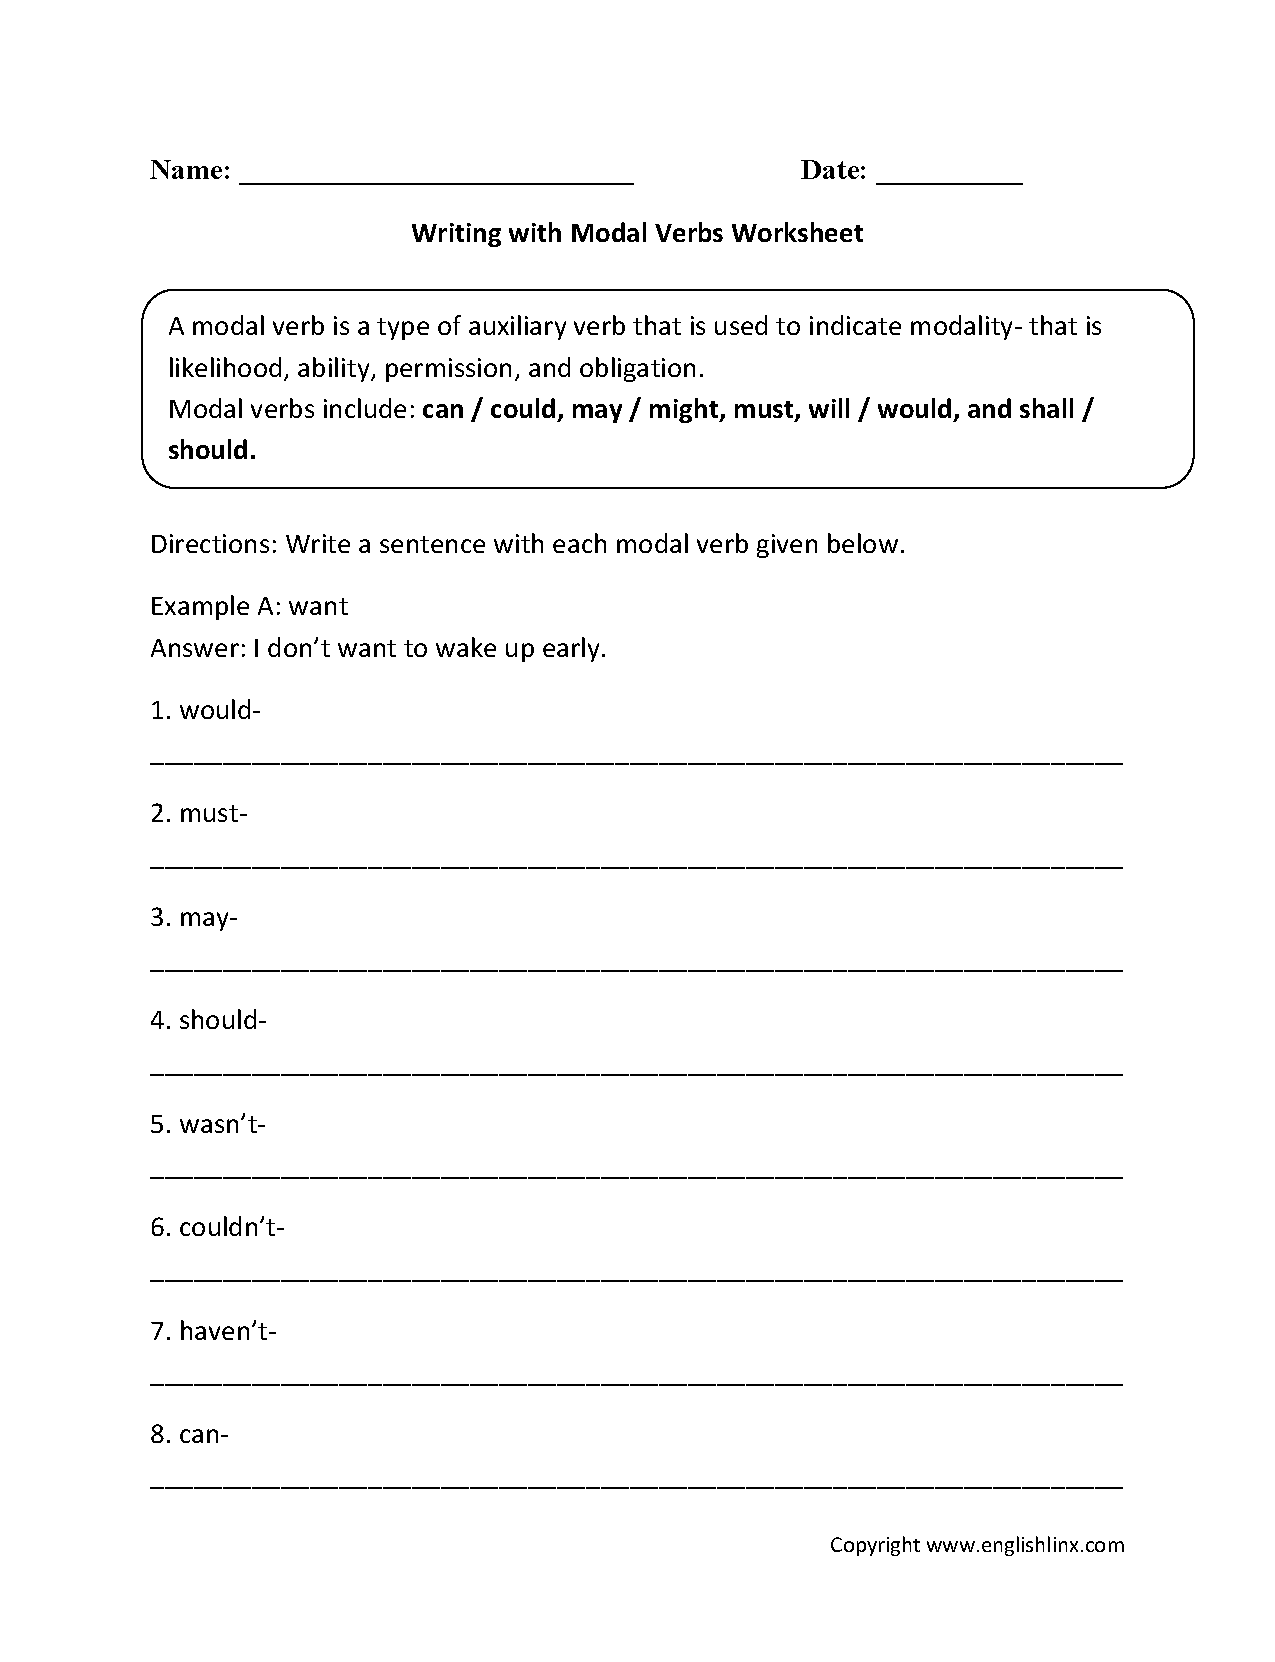 Writing with Modal Verbs Worksheets